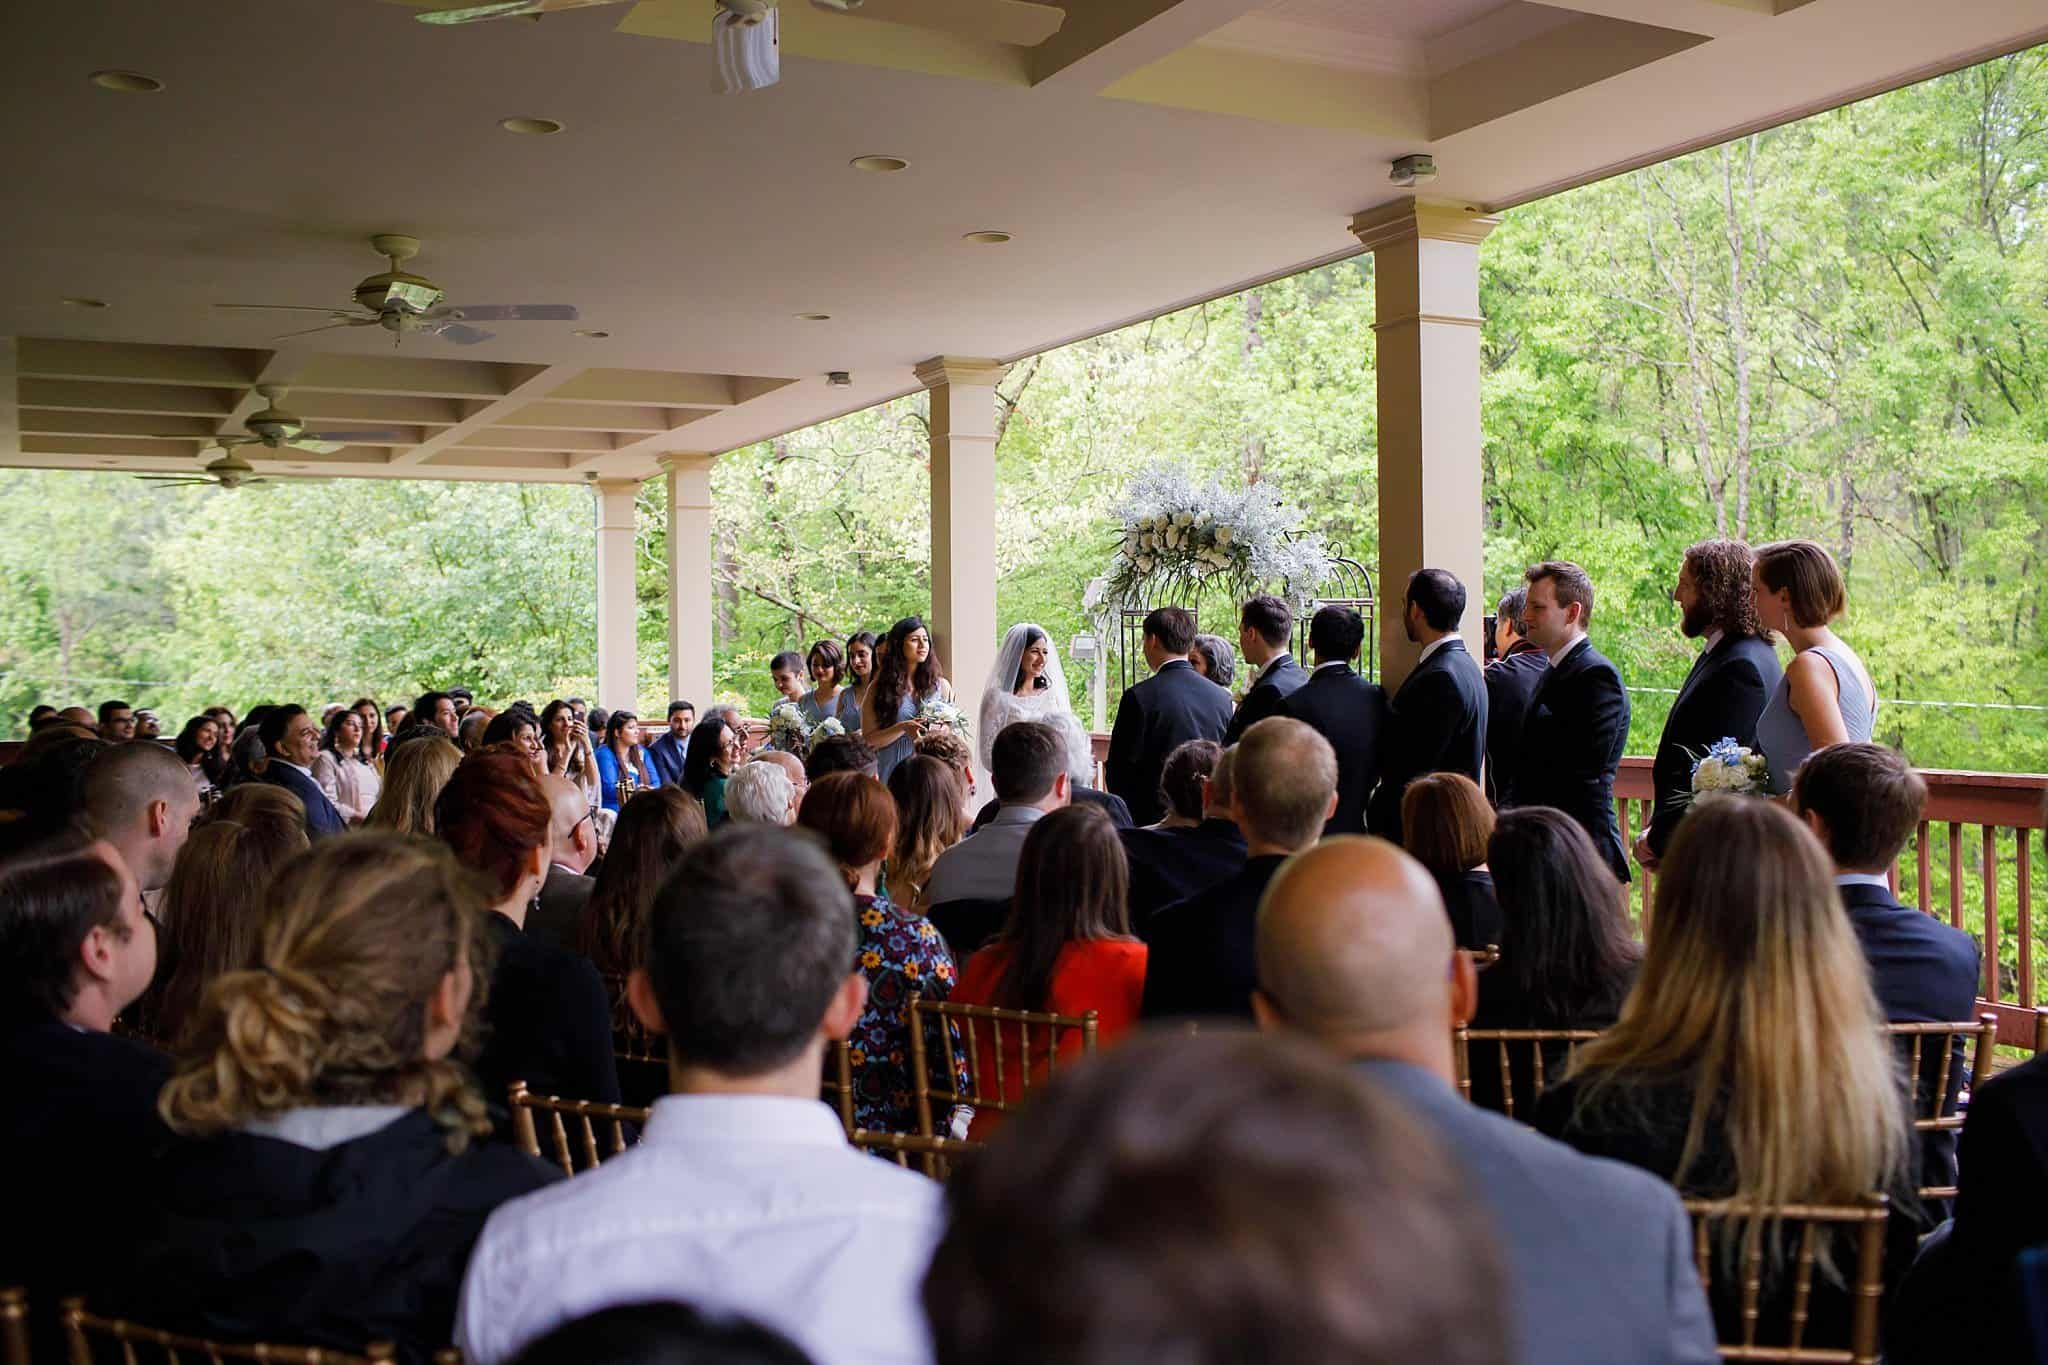 Wedding Ceremony on Deck with Bridal Party, Bride and Groom at Altar under Arbor decorated with florals in ivory, blush, blue